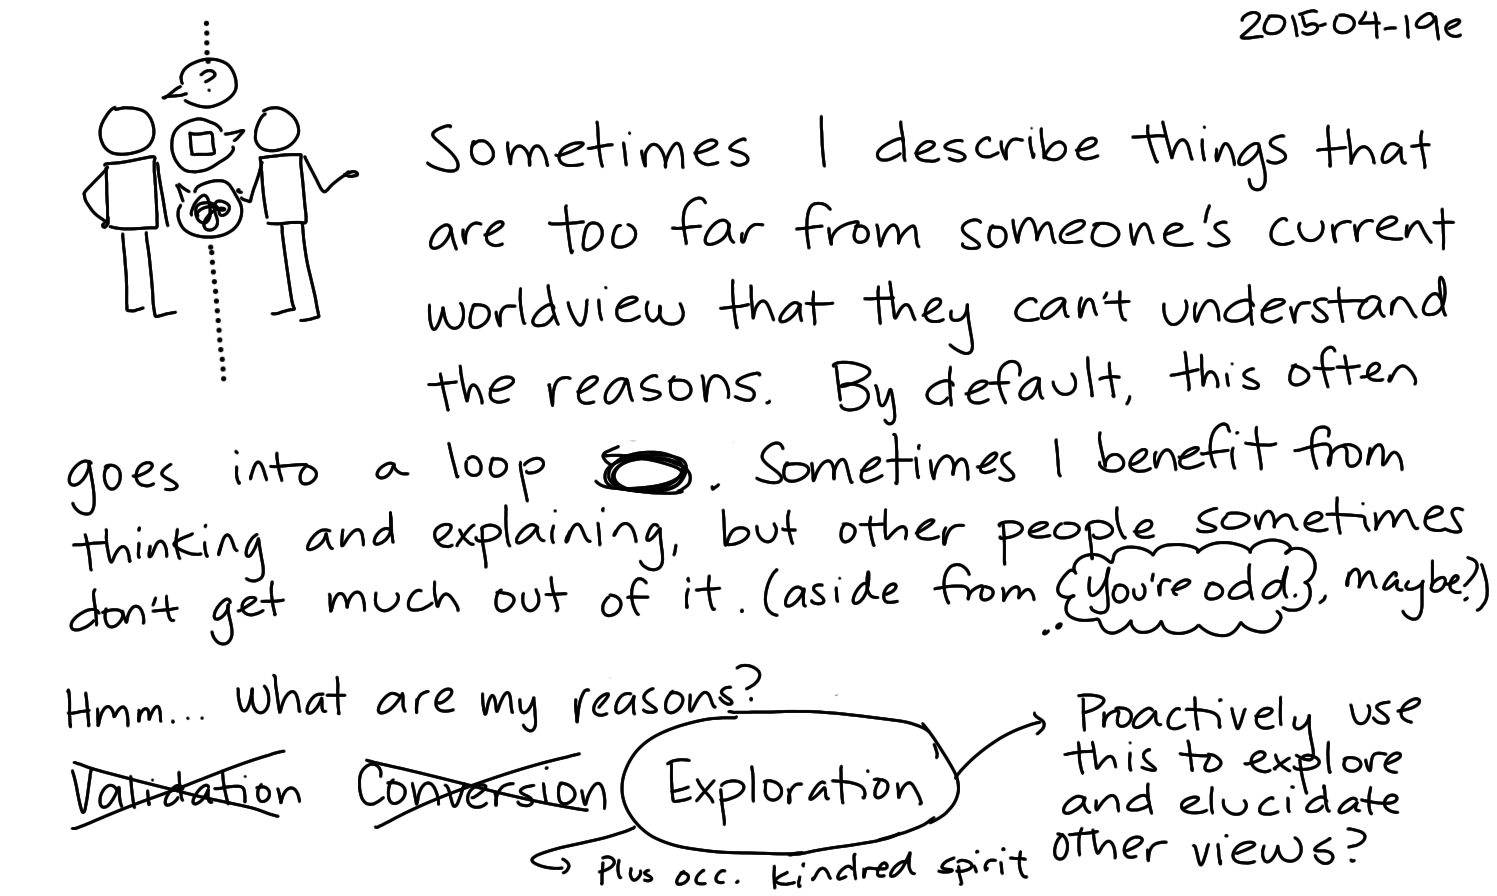 2015-04-19e Different worldviews -- index card #small-talk.png